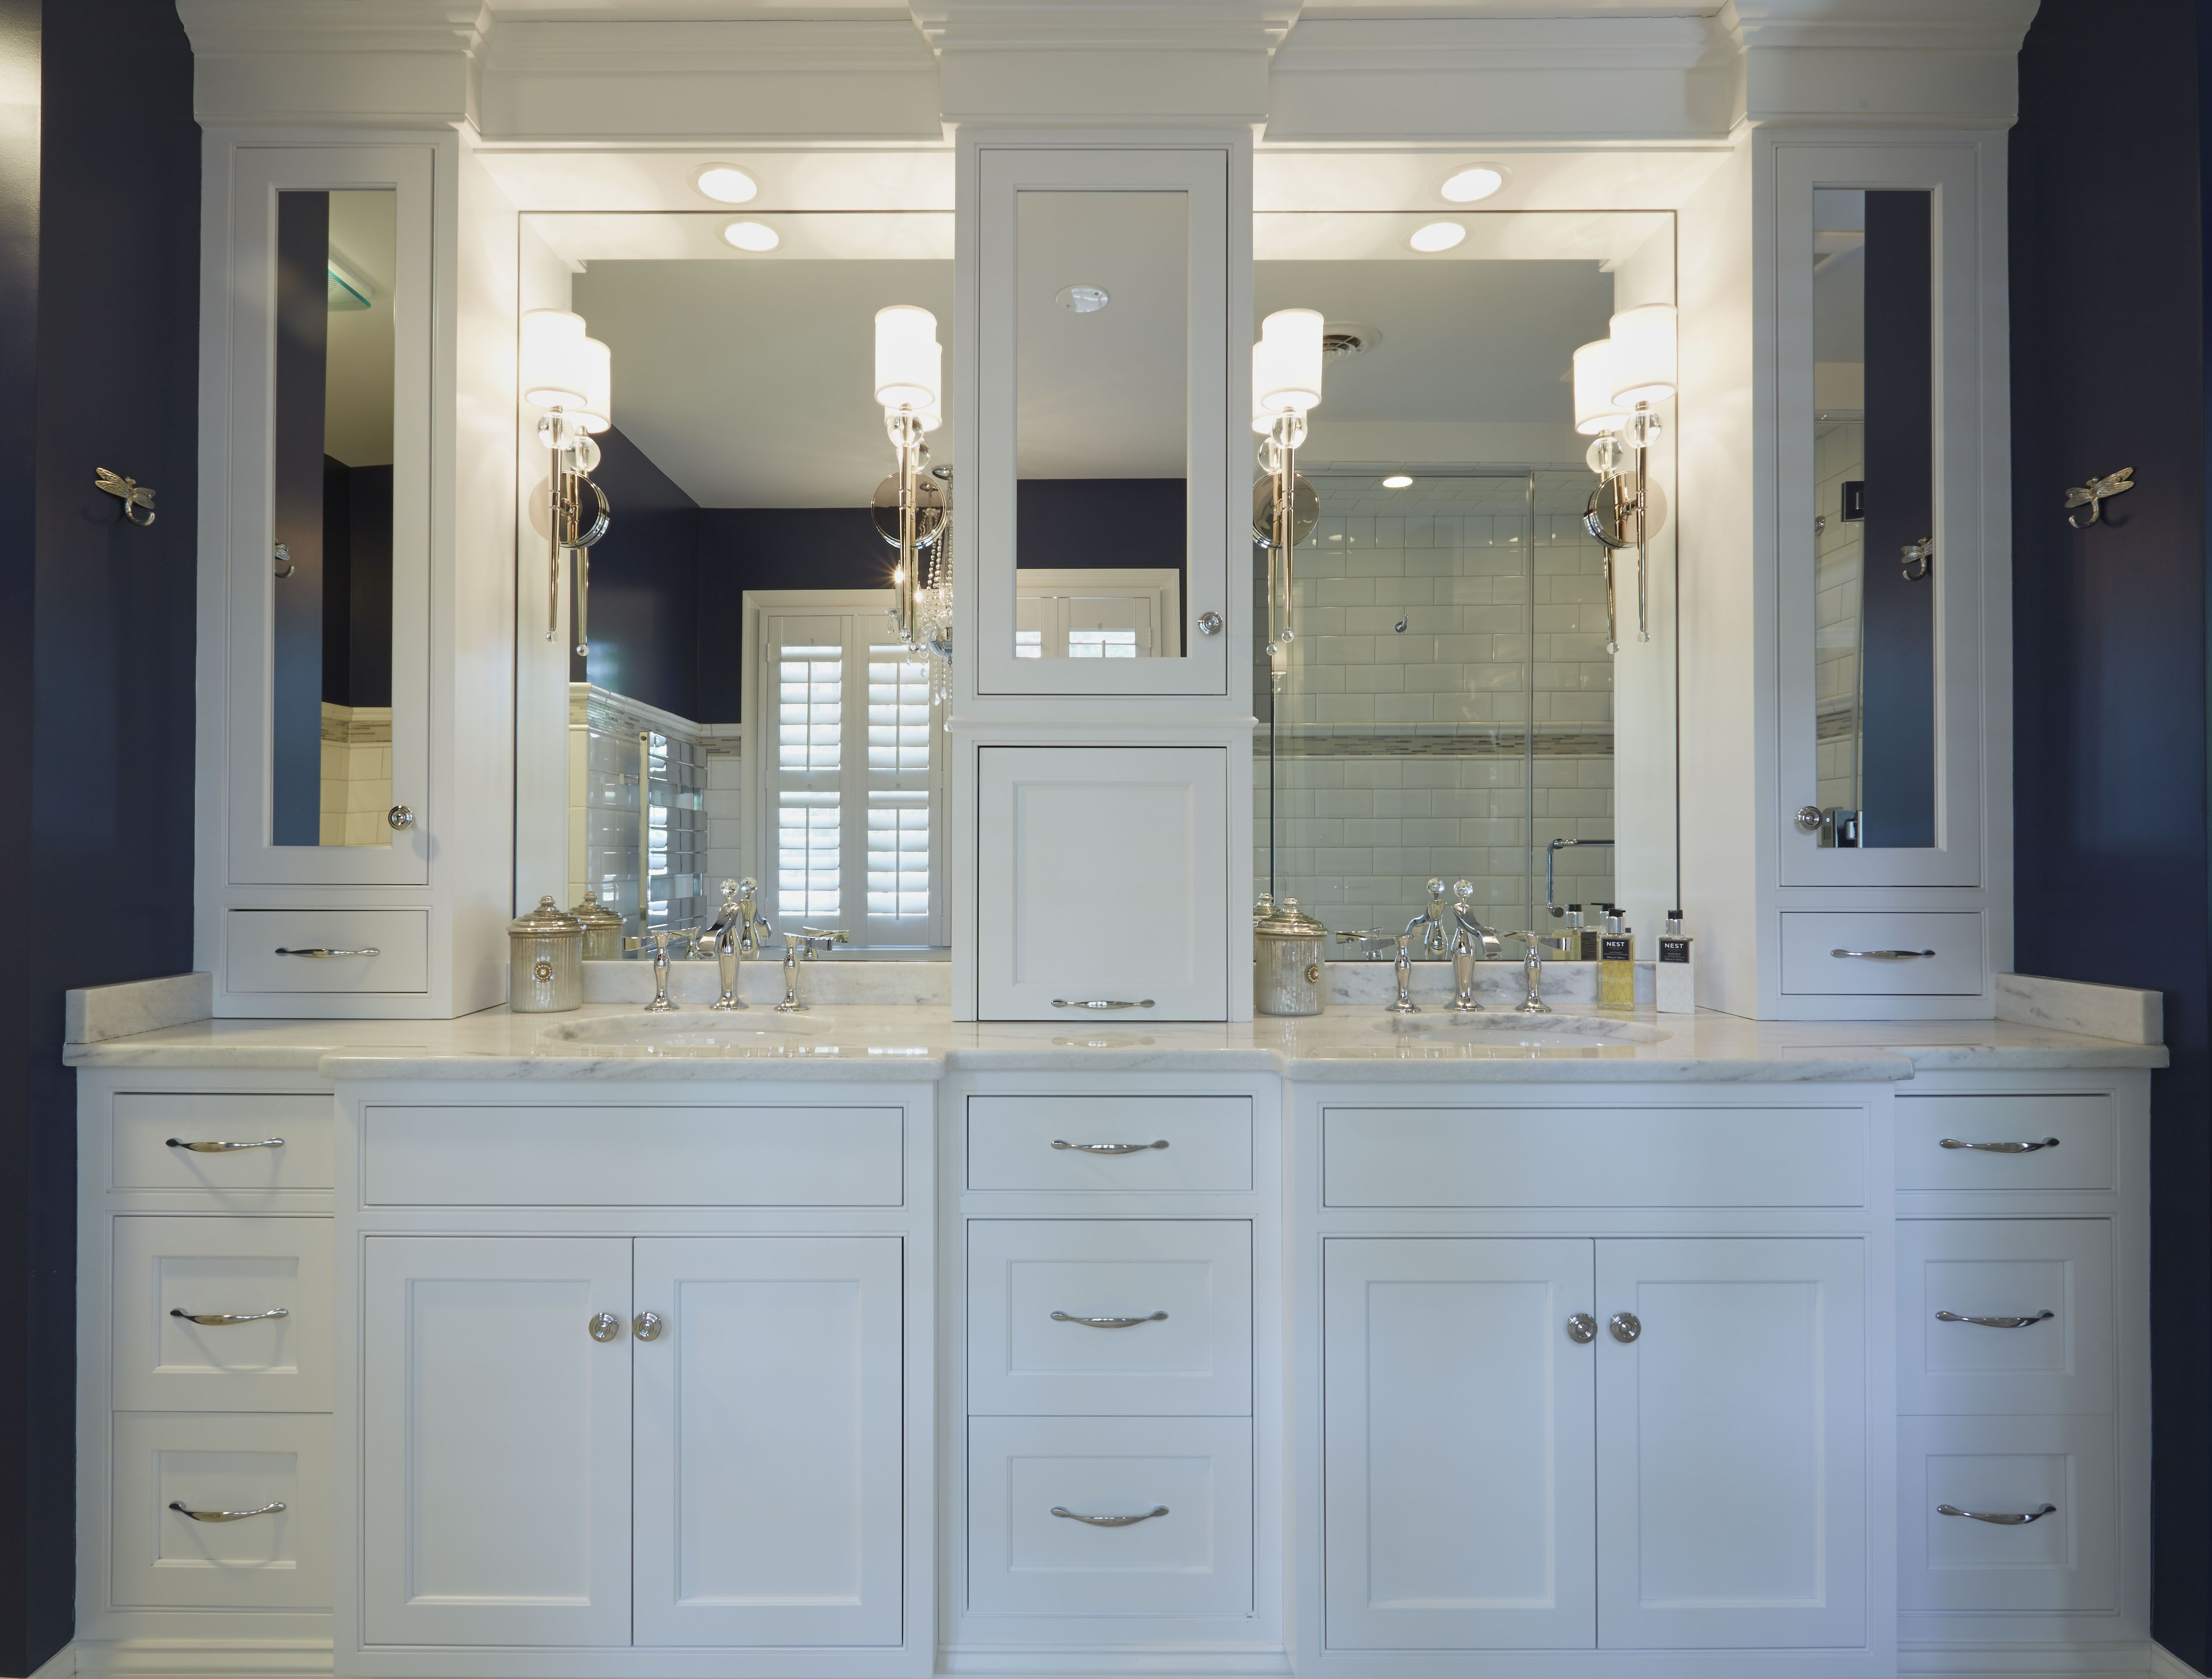 Double White Vanities With Mirrored Upper Cabinets And Lots Of Drawers For Storage